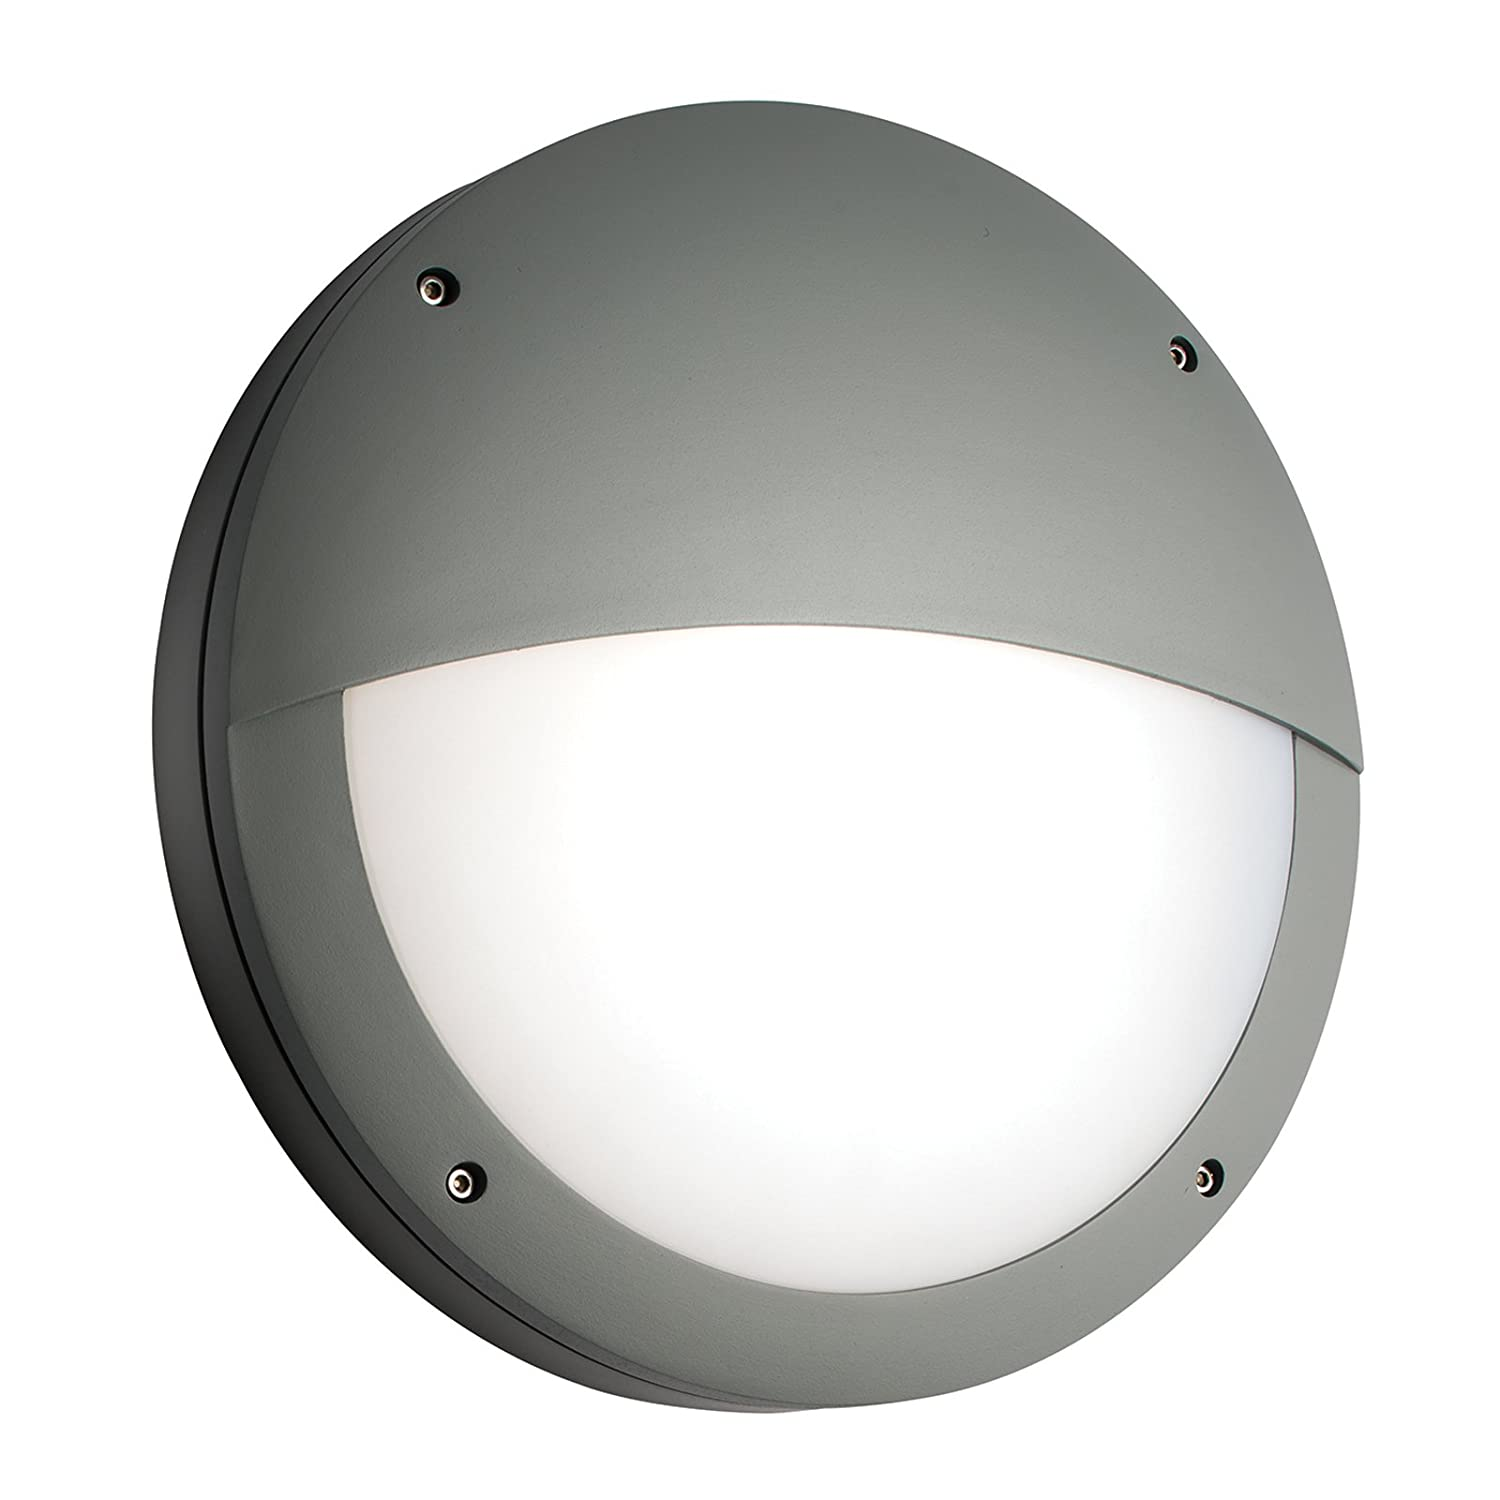 Saxby luik 18w 07w eyelid grey aluminium outdoor ip65 slimline saxby luik 18w 07w eyelid grey aluminium outdoor ip65 slimline emergency bulkhead led wall light amazon lighting mozeypictures Images